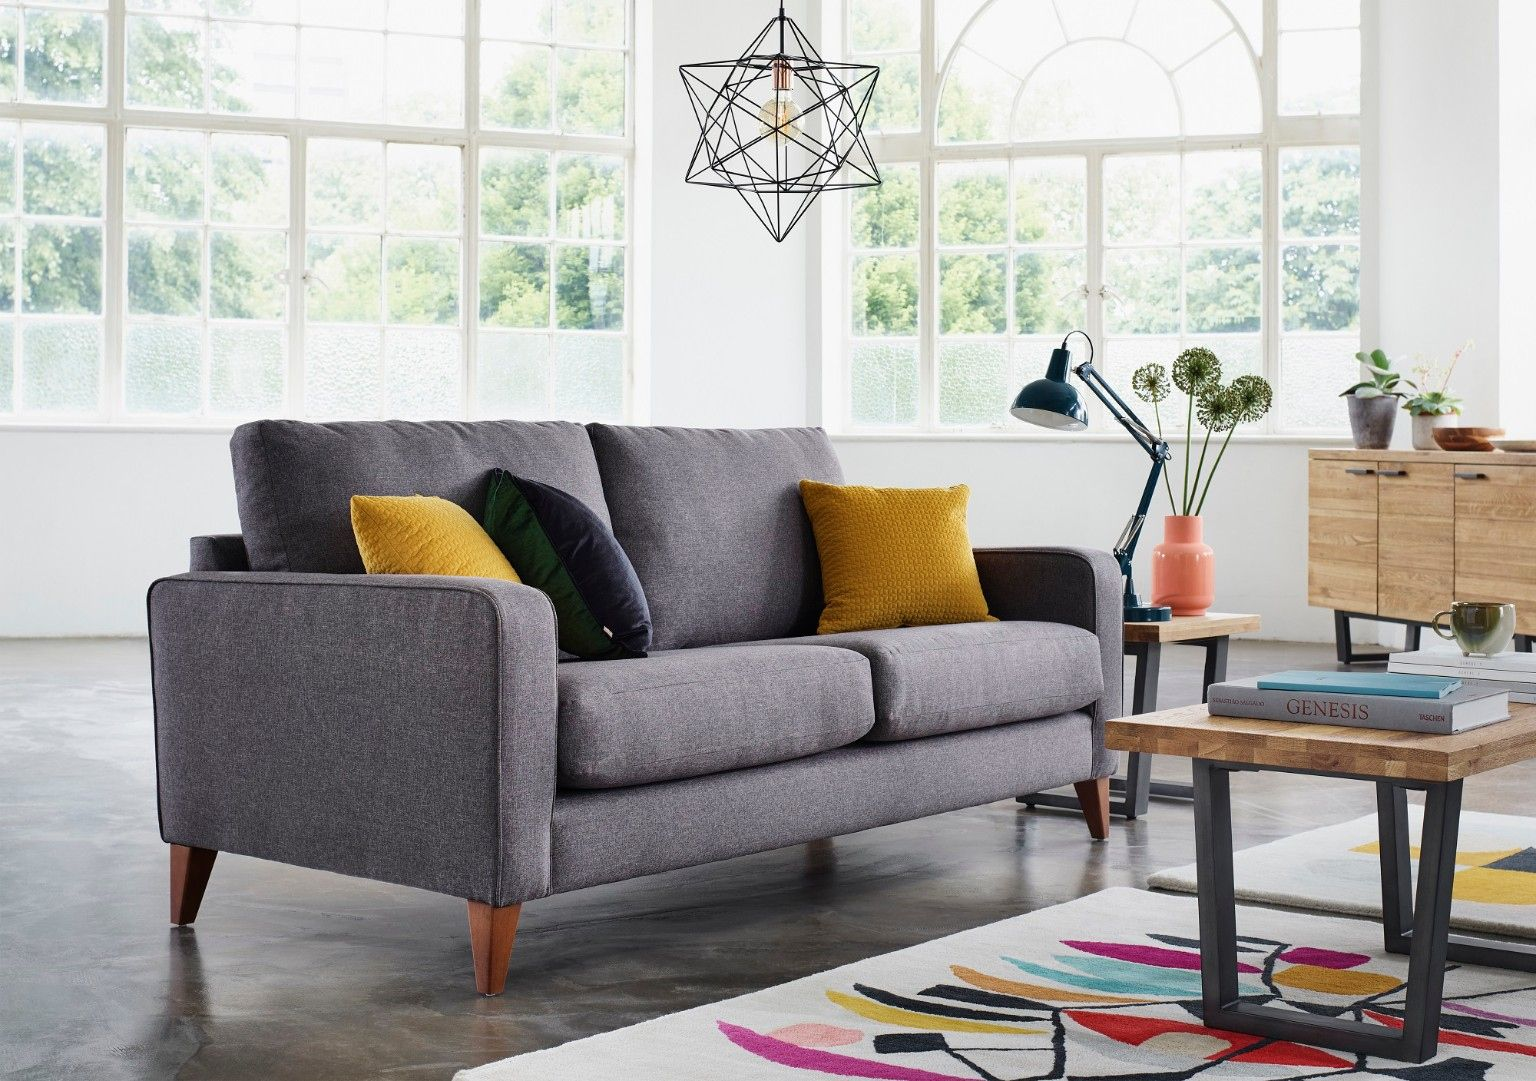 6 Modern Sofas Under 500 Affordable Low Cost Modern Sofas Sofa Modern Sofa Contemporary Sofa